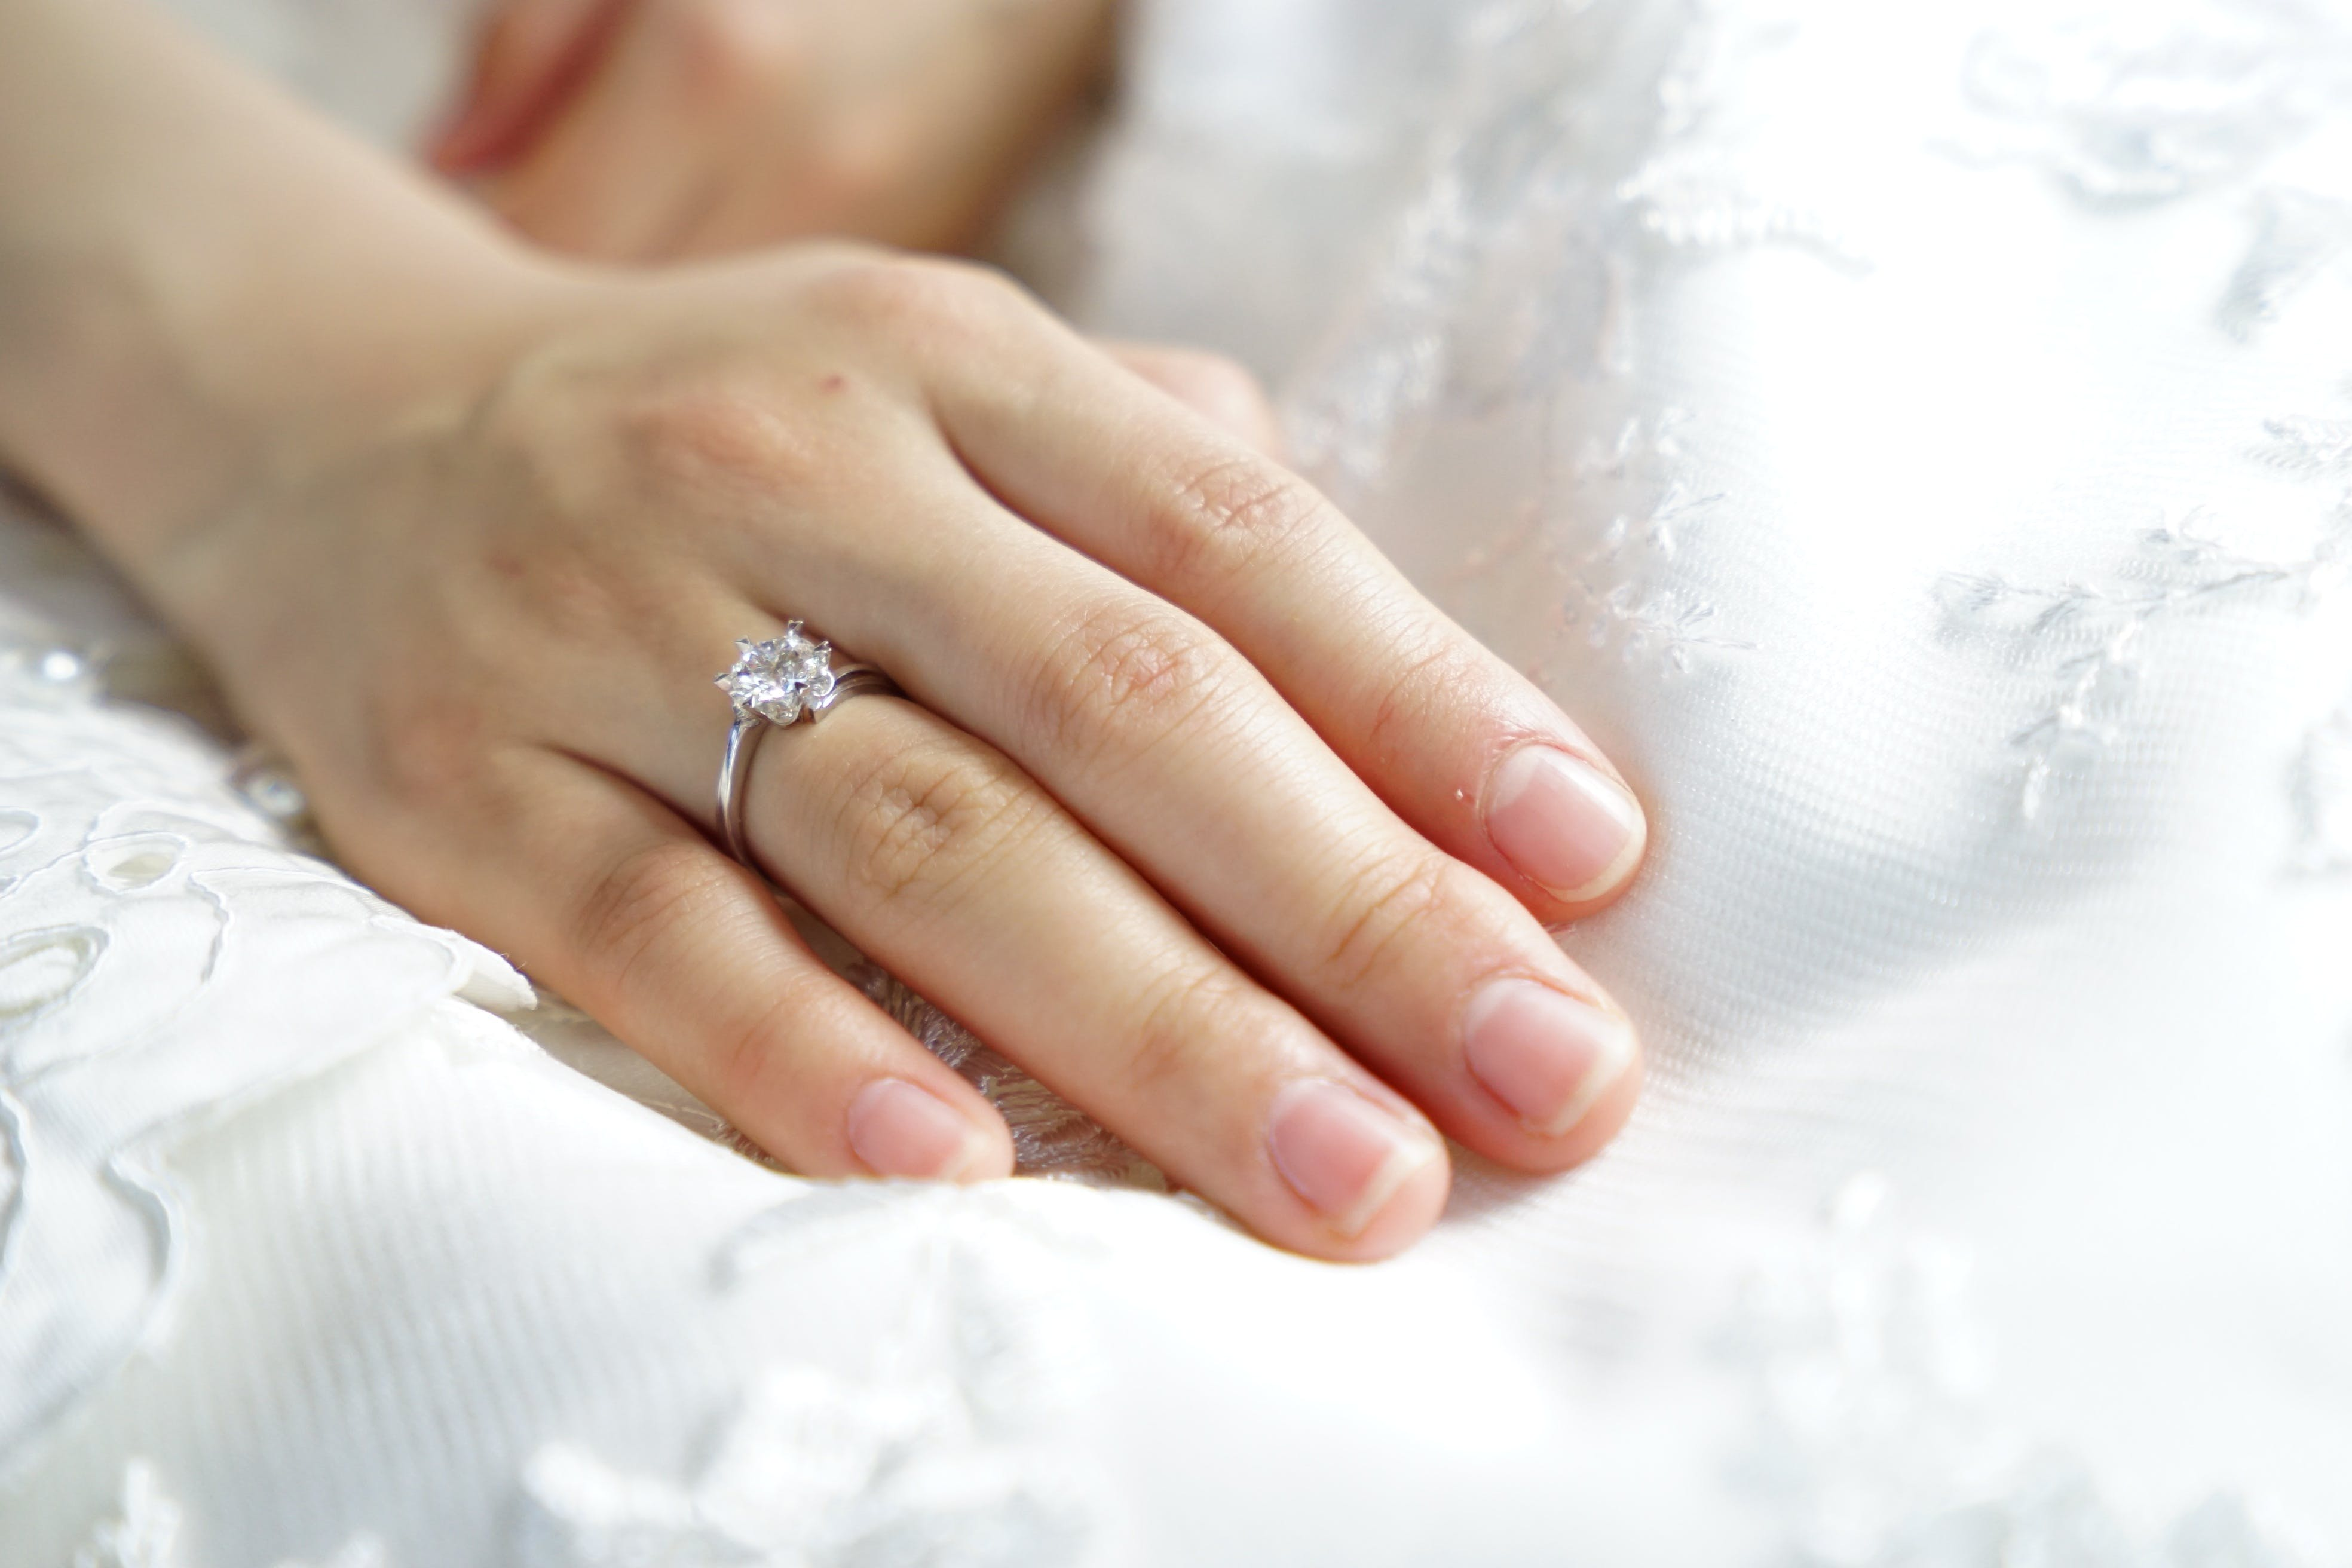 Person Wearing Silver-colored Solitaire Ring With Clear Gemstone